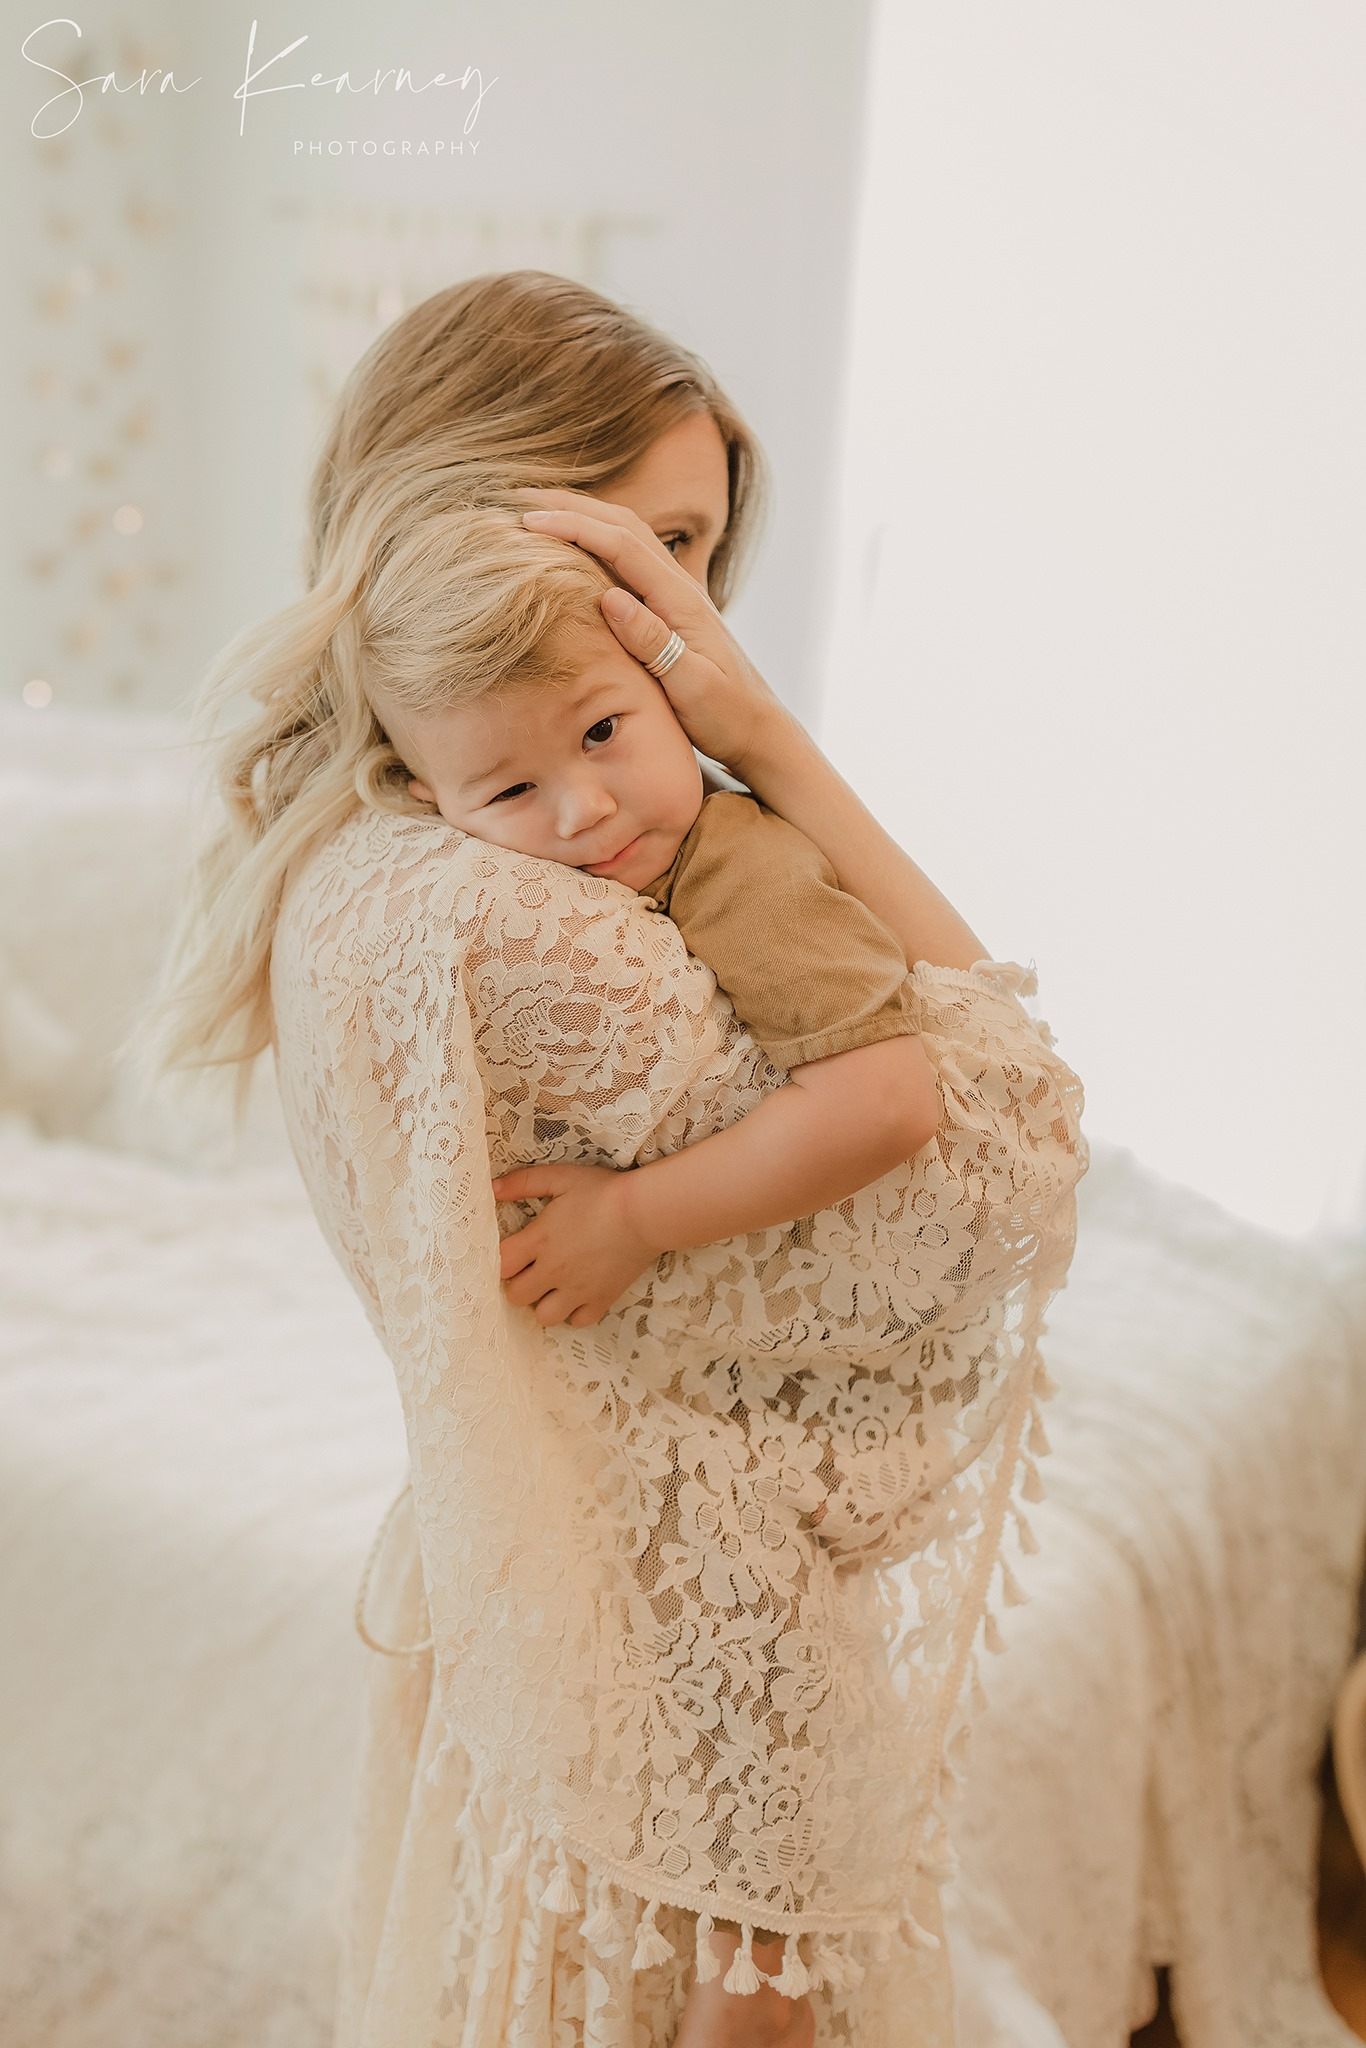 Boho Photo Shoot!! Mommy photoshoot | Sara Kearney Orlando Photographer 10